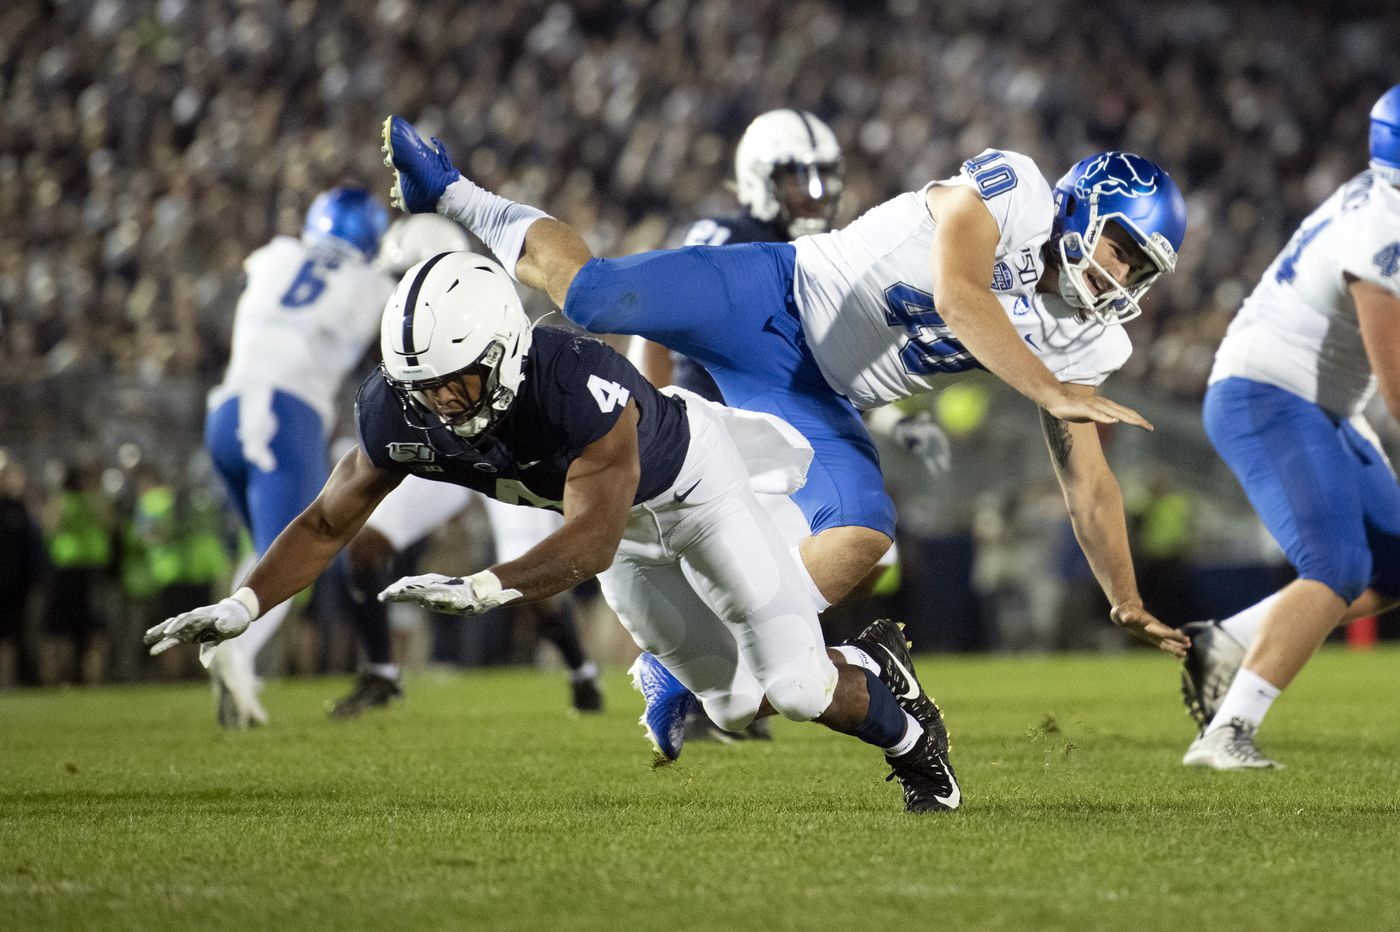 John Reid's pick-6 sparks a 28-point third quarter and carries Penn State to a 45-13 win over Buffalo